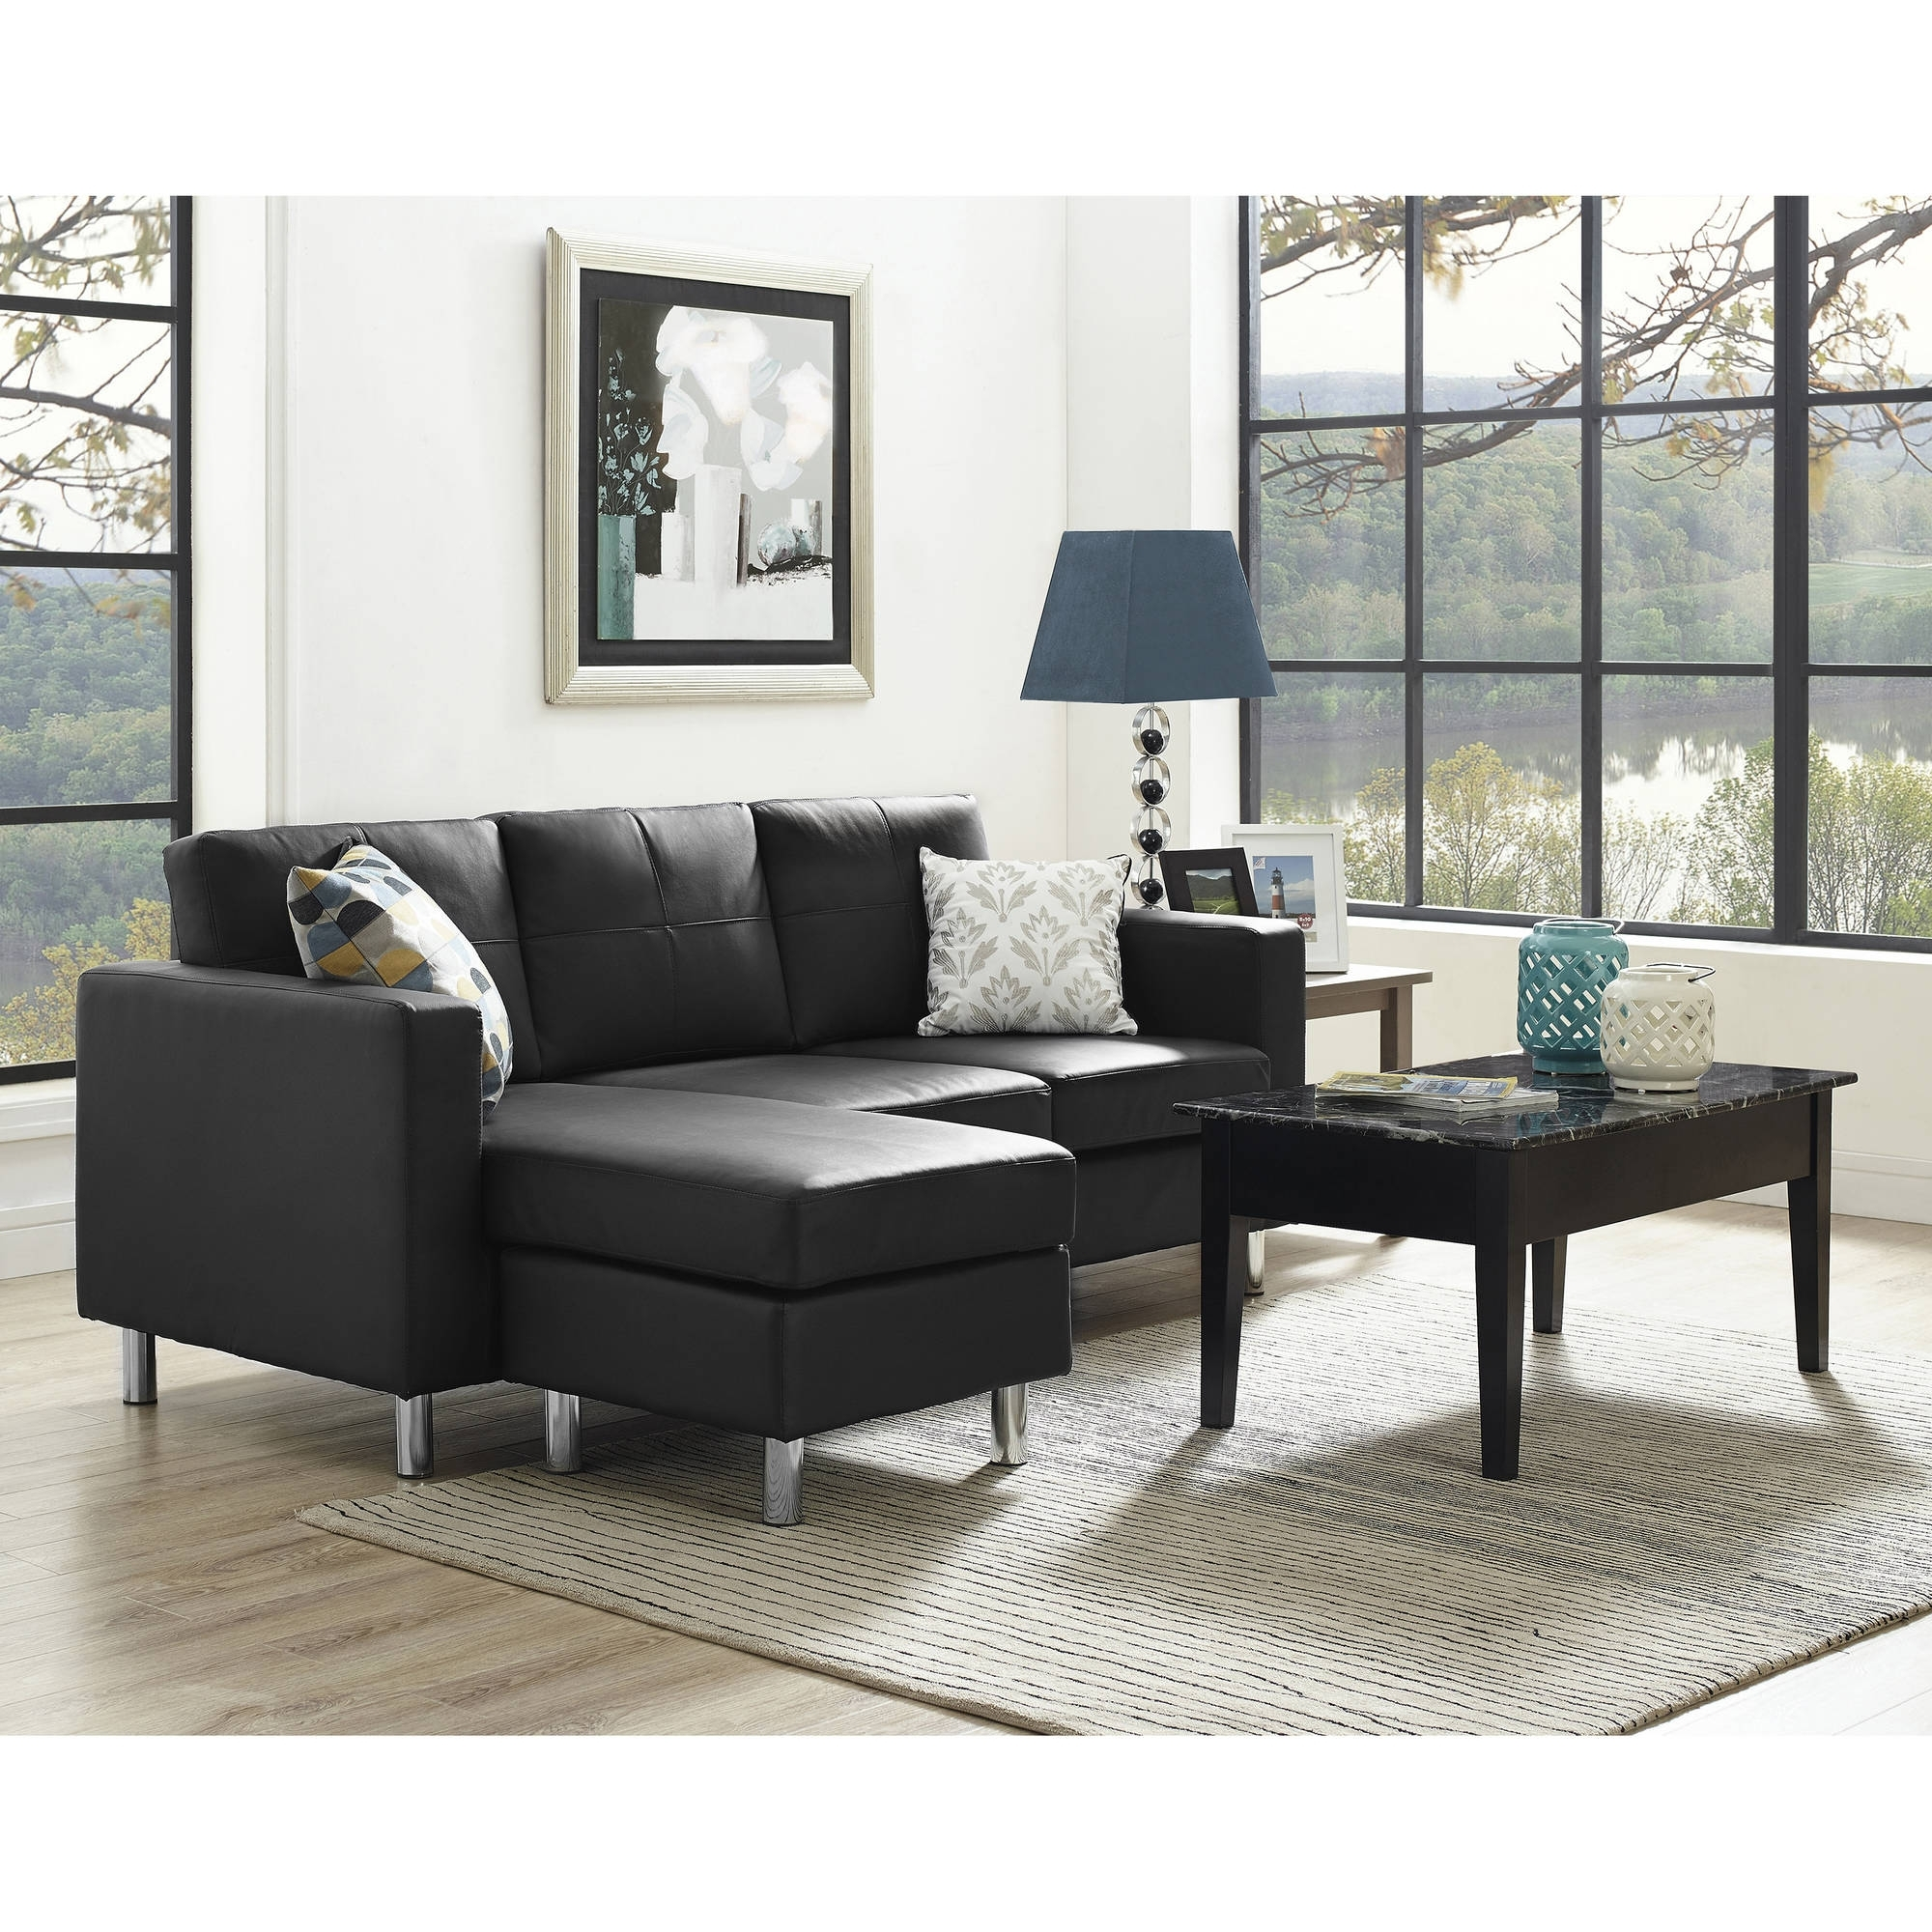 Dorel Living Small Spaces Configurable Sectional Sofa, Multiple pertaining to Small Spaces Sectional Sofas (Image 5 of 10)